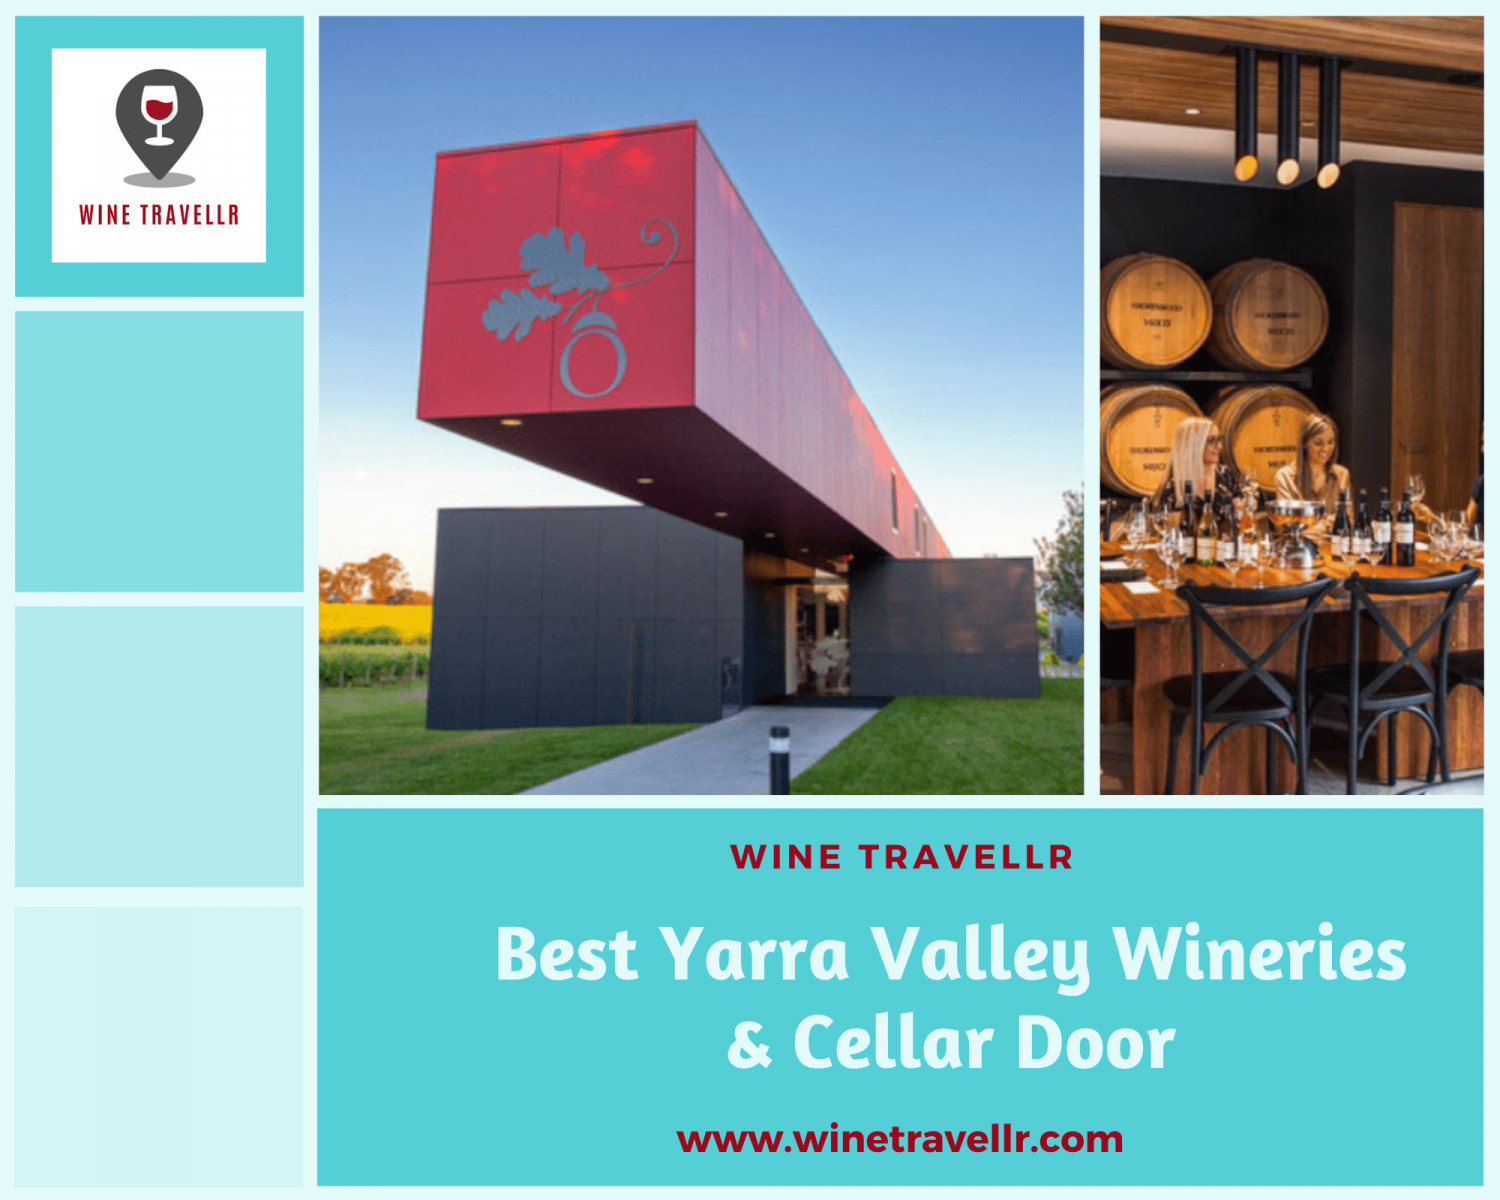 Best Yarra Valley Wineries & Cellar Door Infographic